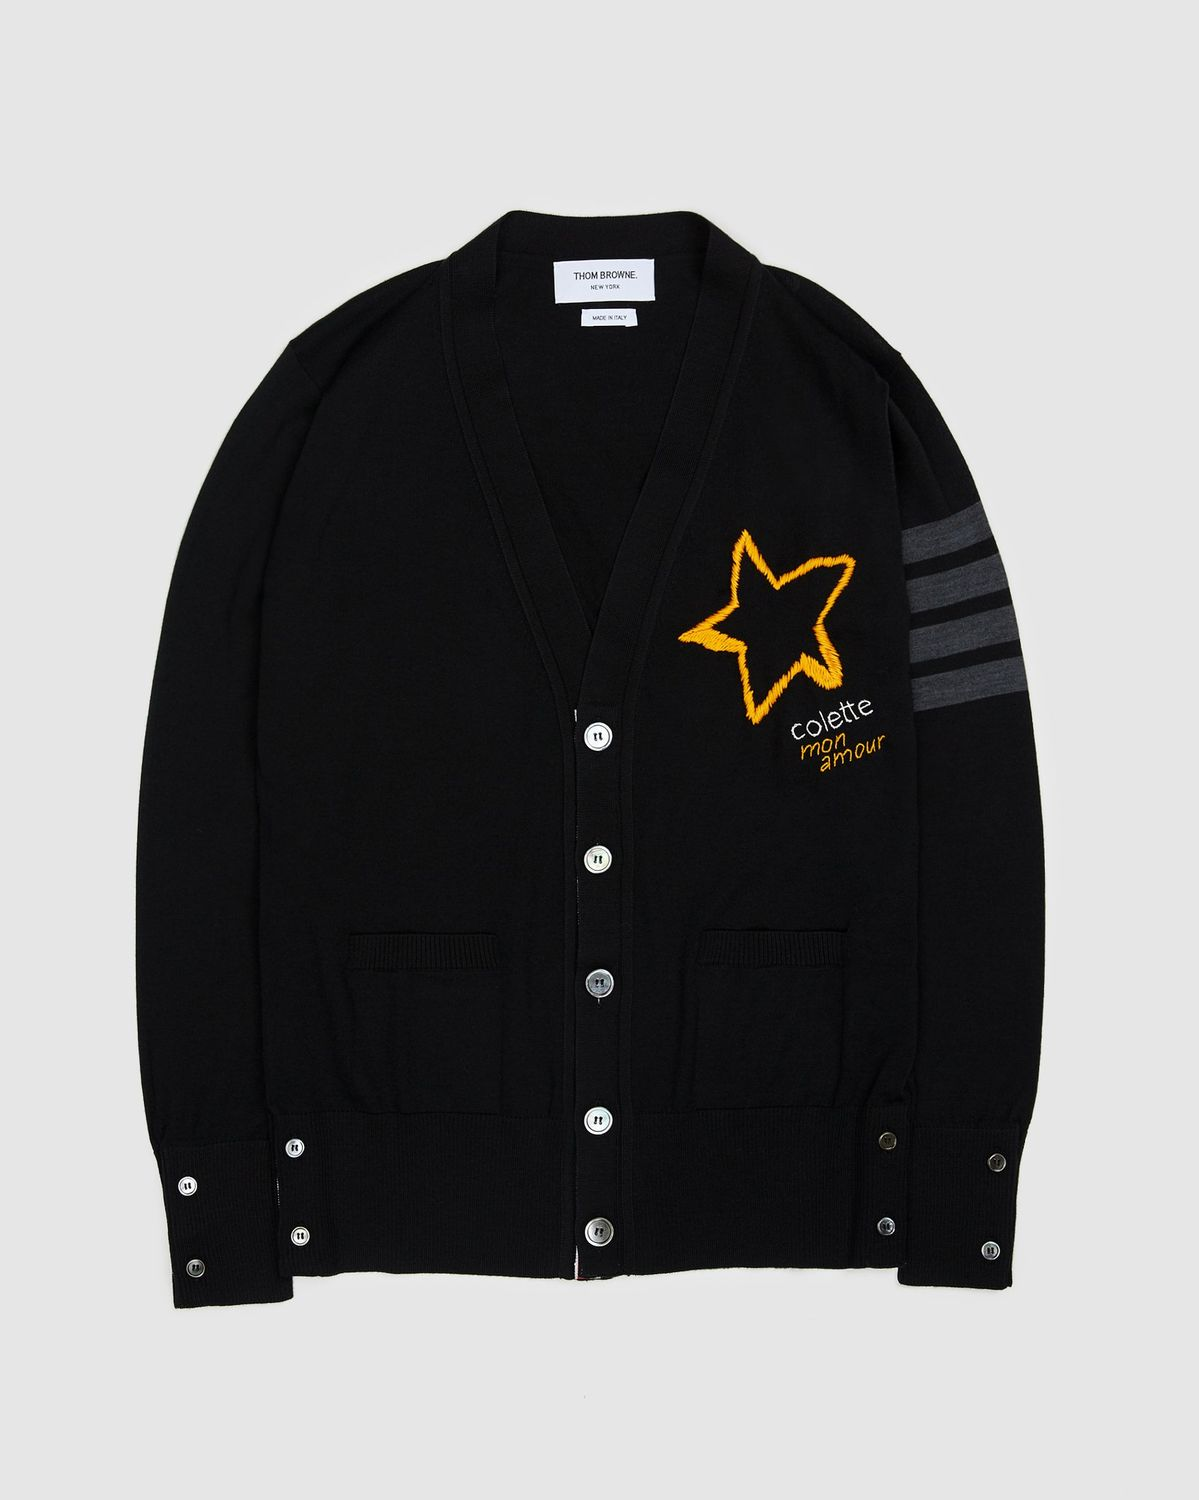 Colette Mon Amour x Thom Browne — Black Star Cardigan - Image 1